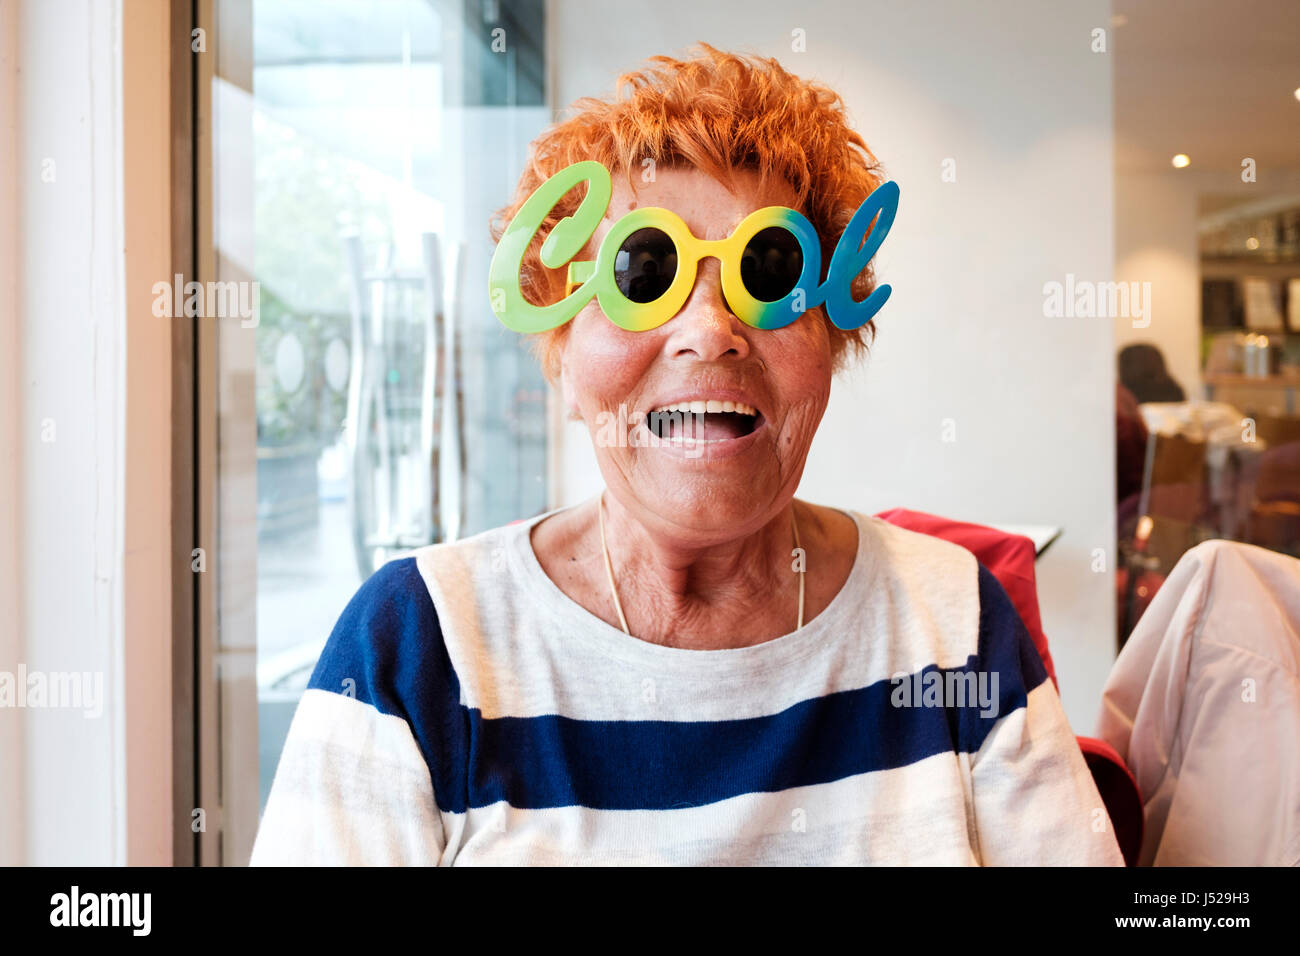 An elderly lady or old aged pensioner having a good time and enjoys a fun moment with some comic cool glasses - Stock Image